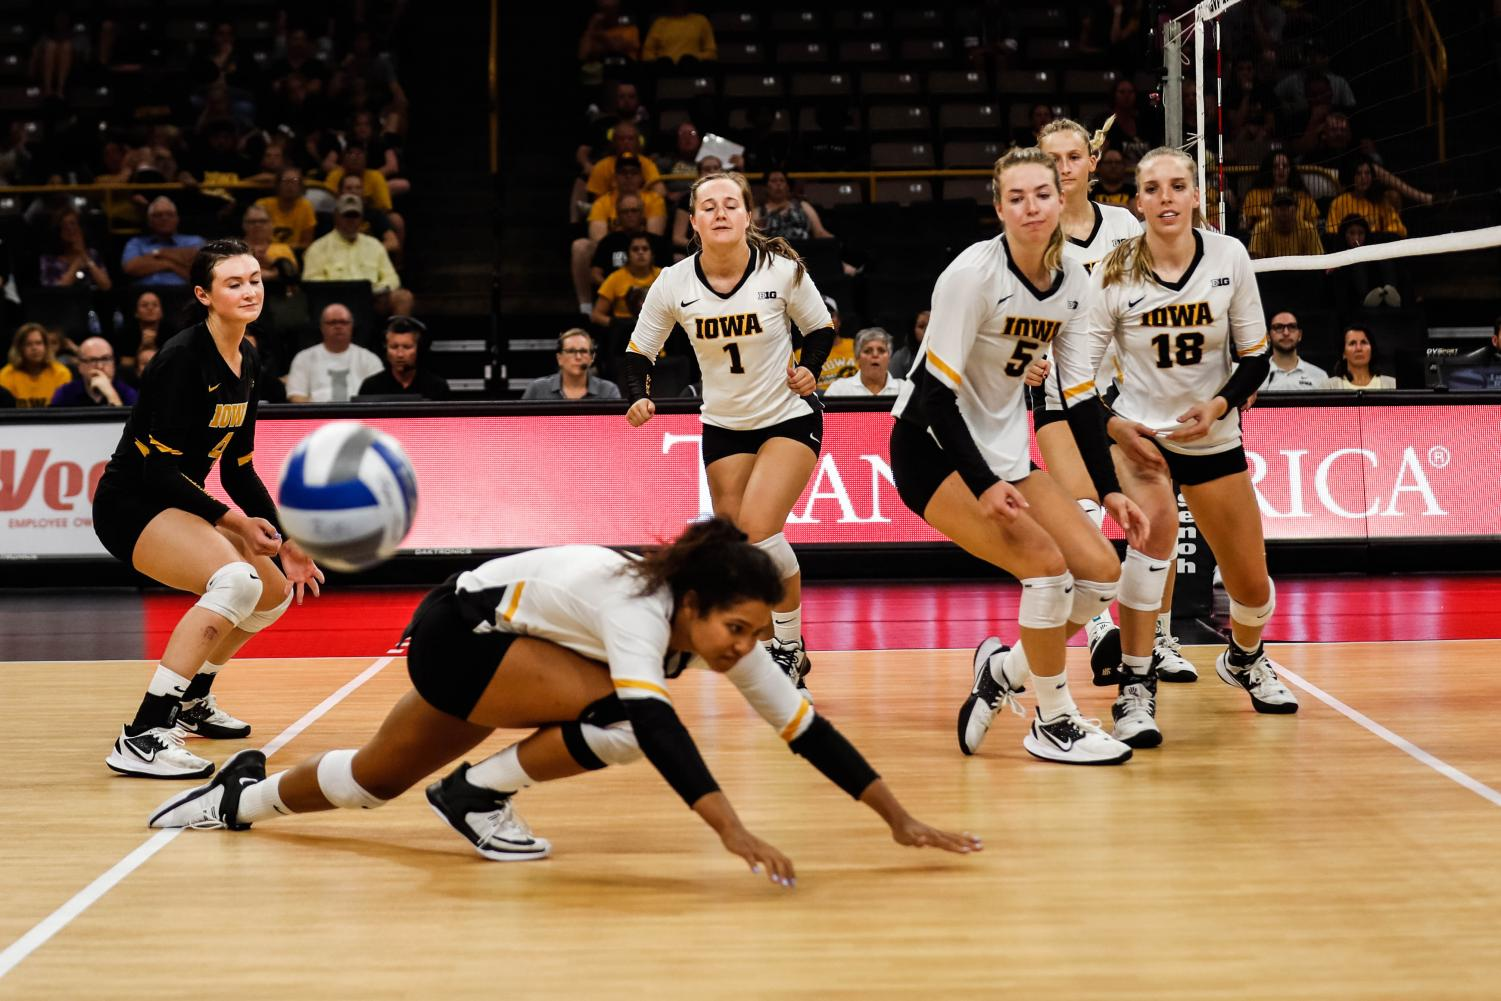 Iowa+players+watch+the+ball+go+out+of+bounds+during+a+volleyball+match+between+Iowa+and+Washington+at+Carver+Hawkeye+Arena+on+Saturday%2C+September+7%2C+2019.+The+Hawkeyes+were+defeated+by+the+Huskies%2C+3-1.